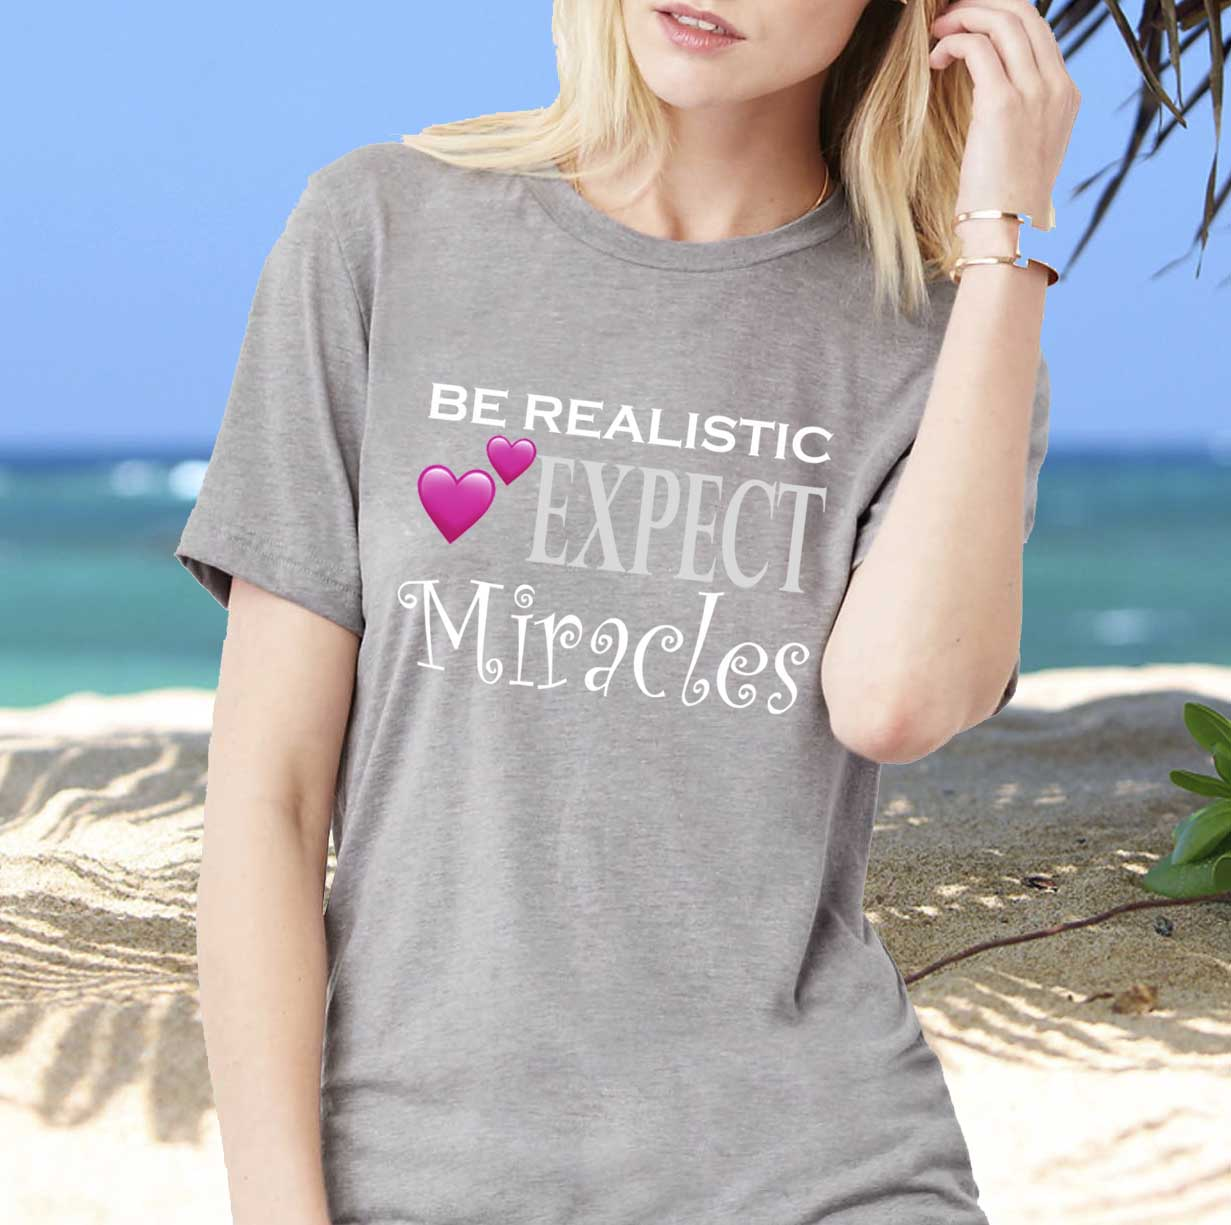 BE REALISTIC - EXPECT MIRACLES - Unisex Triblend Short Sleeve T-Shirt - FabulousLife